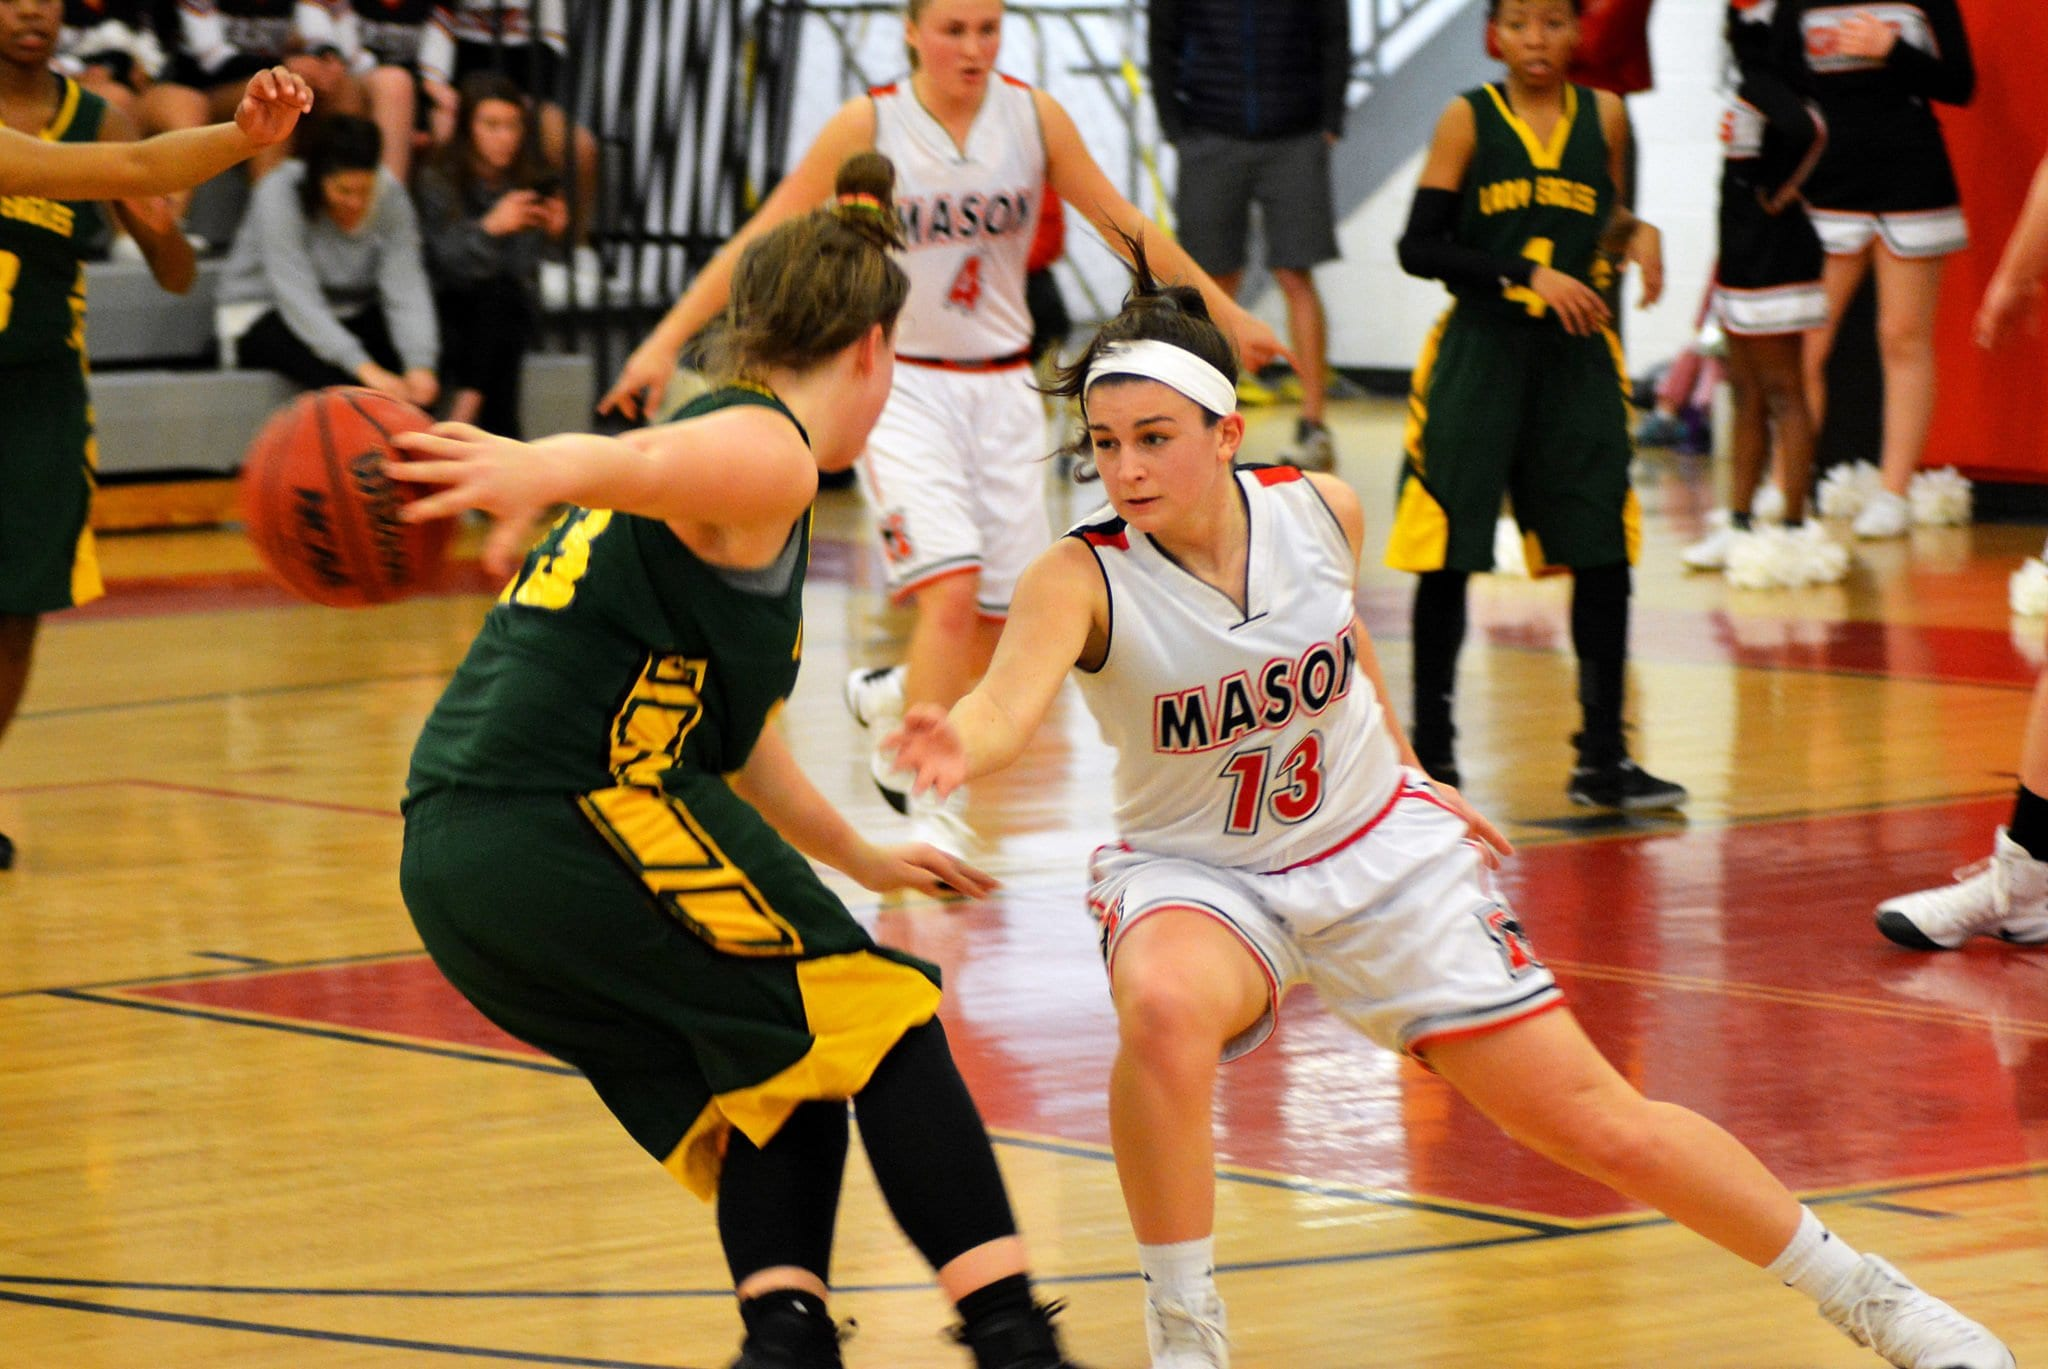 Sarah Lubnow plays defense during the Mustangs' 51-37 win over the Greensville County High School Eagles in the 2A East Region tournament. (Photos: Carol Sly)